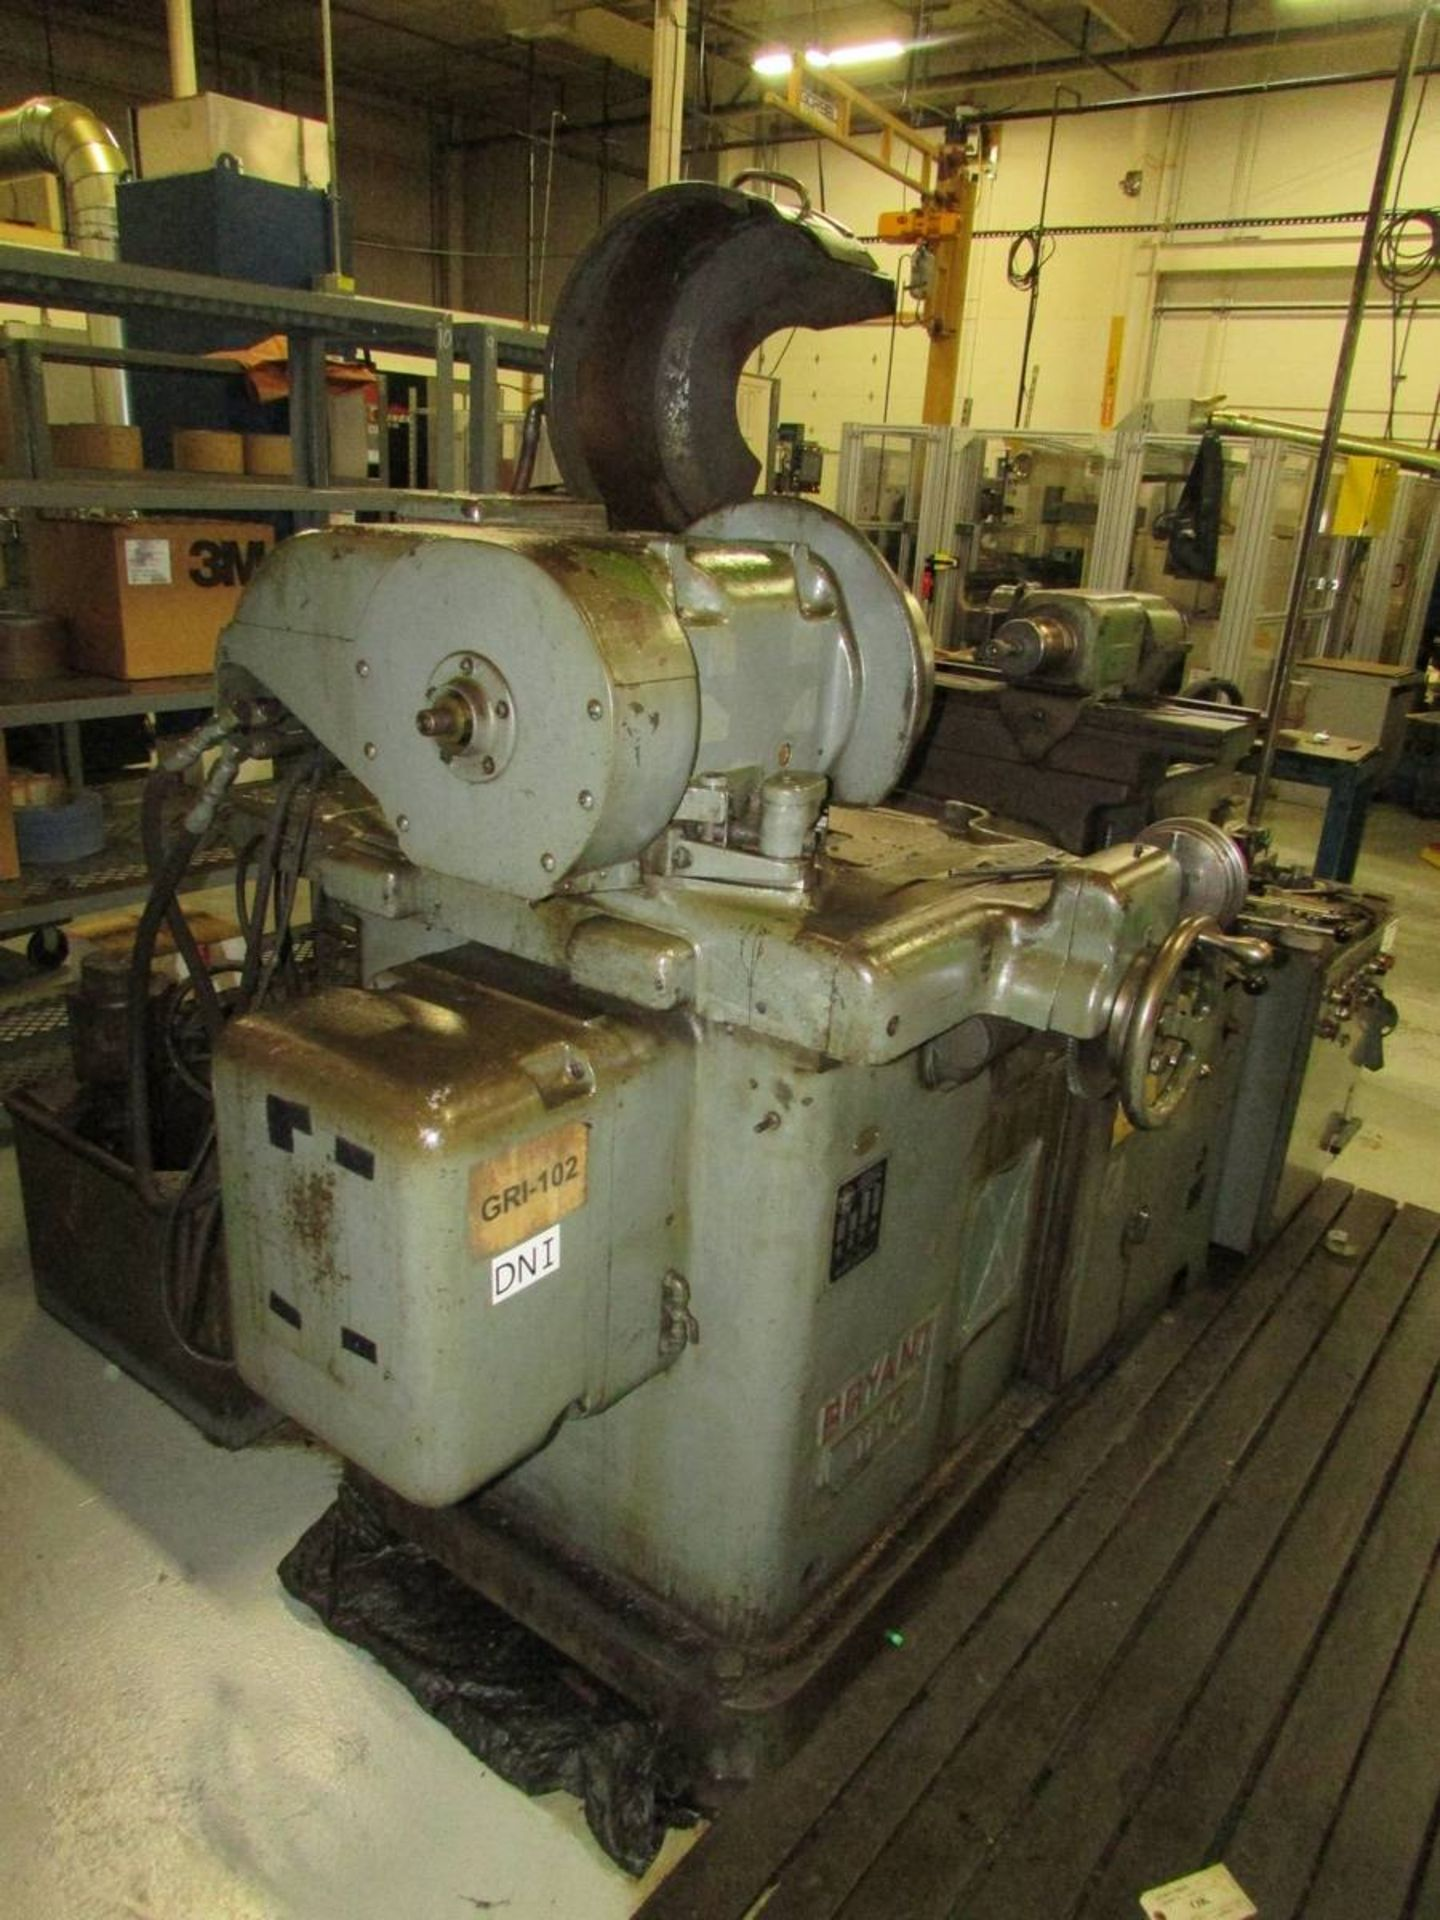 1981 Bryant 1116 ID Cylindrical Grinder - Image 13 of 20